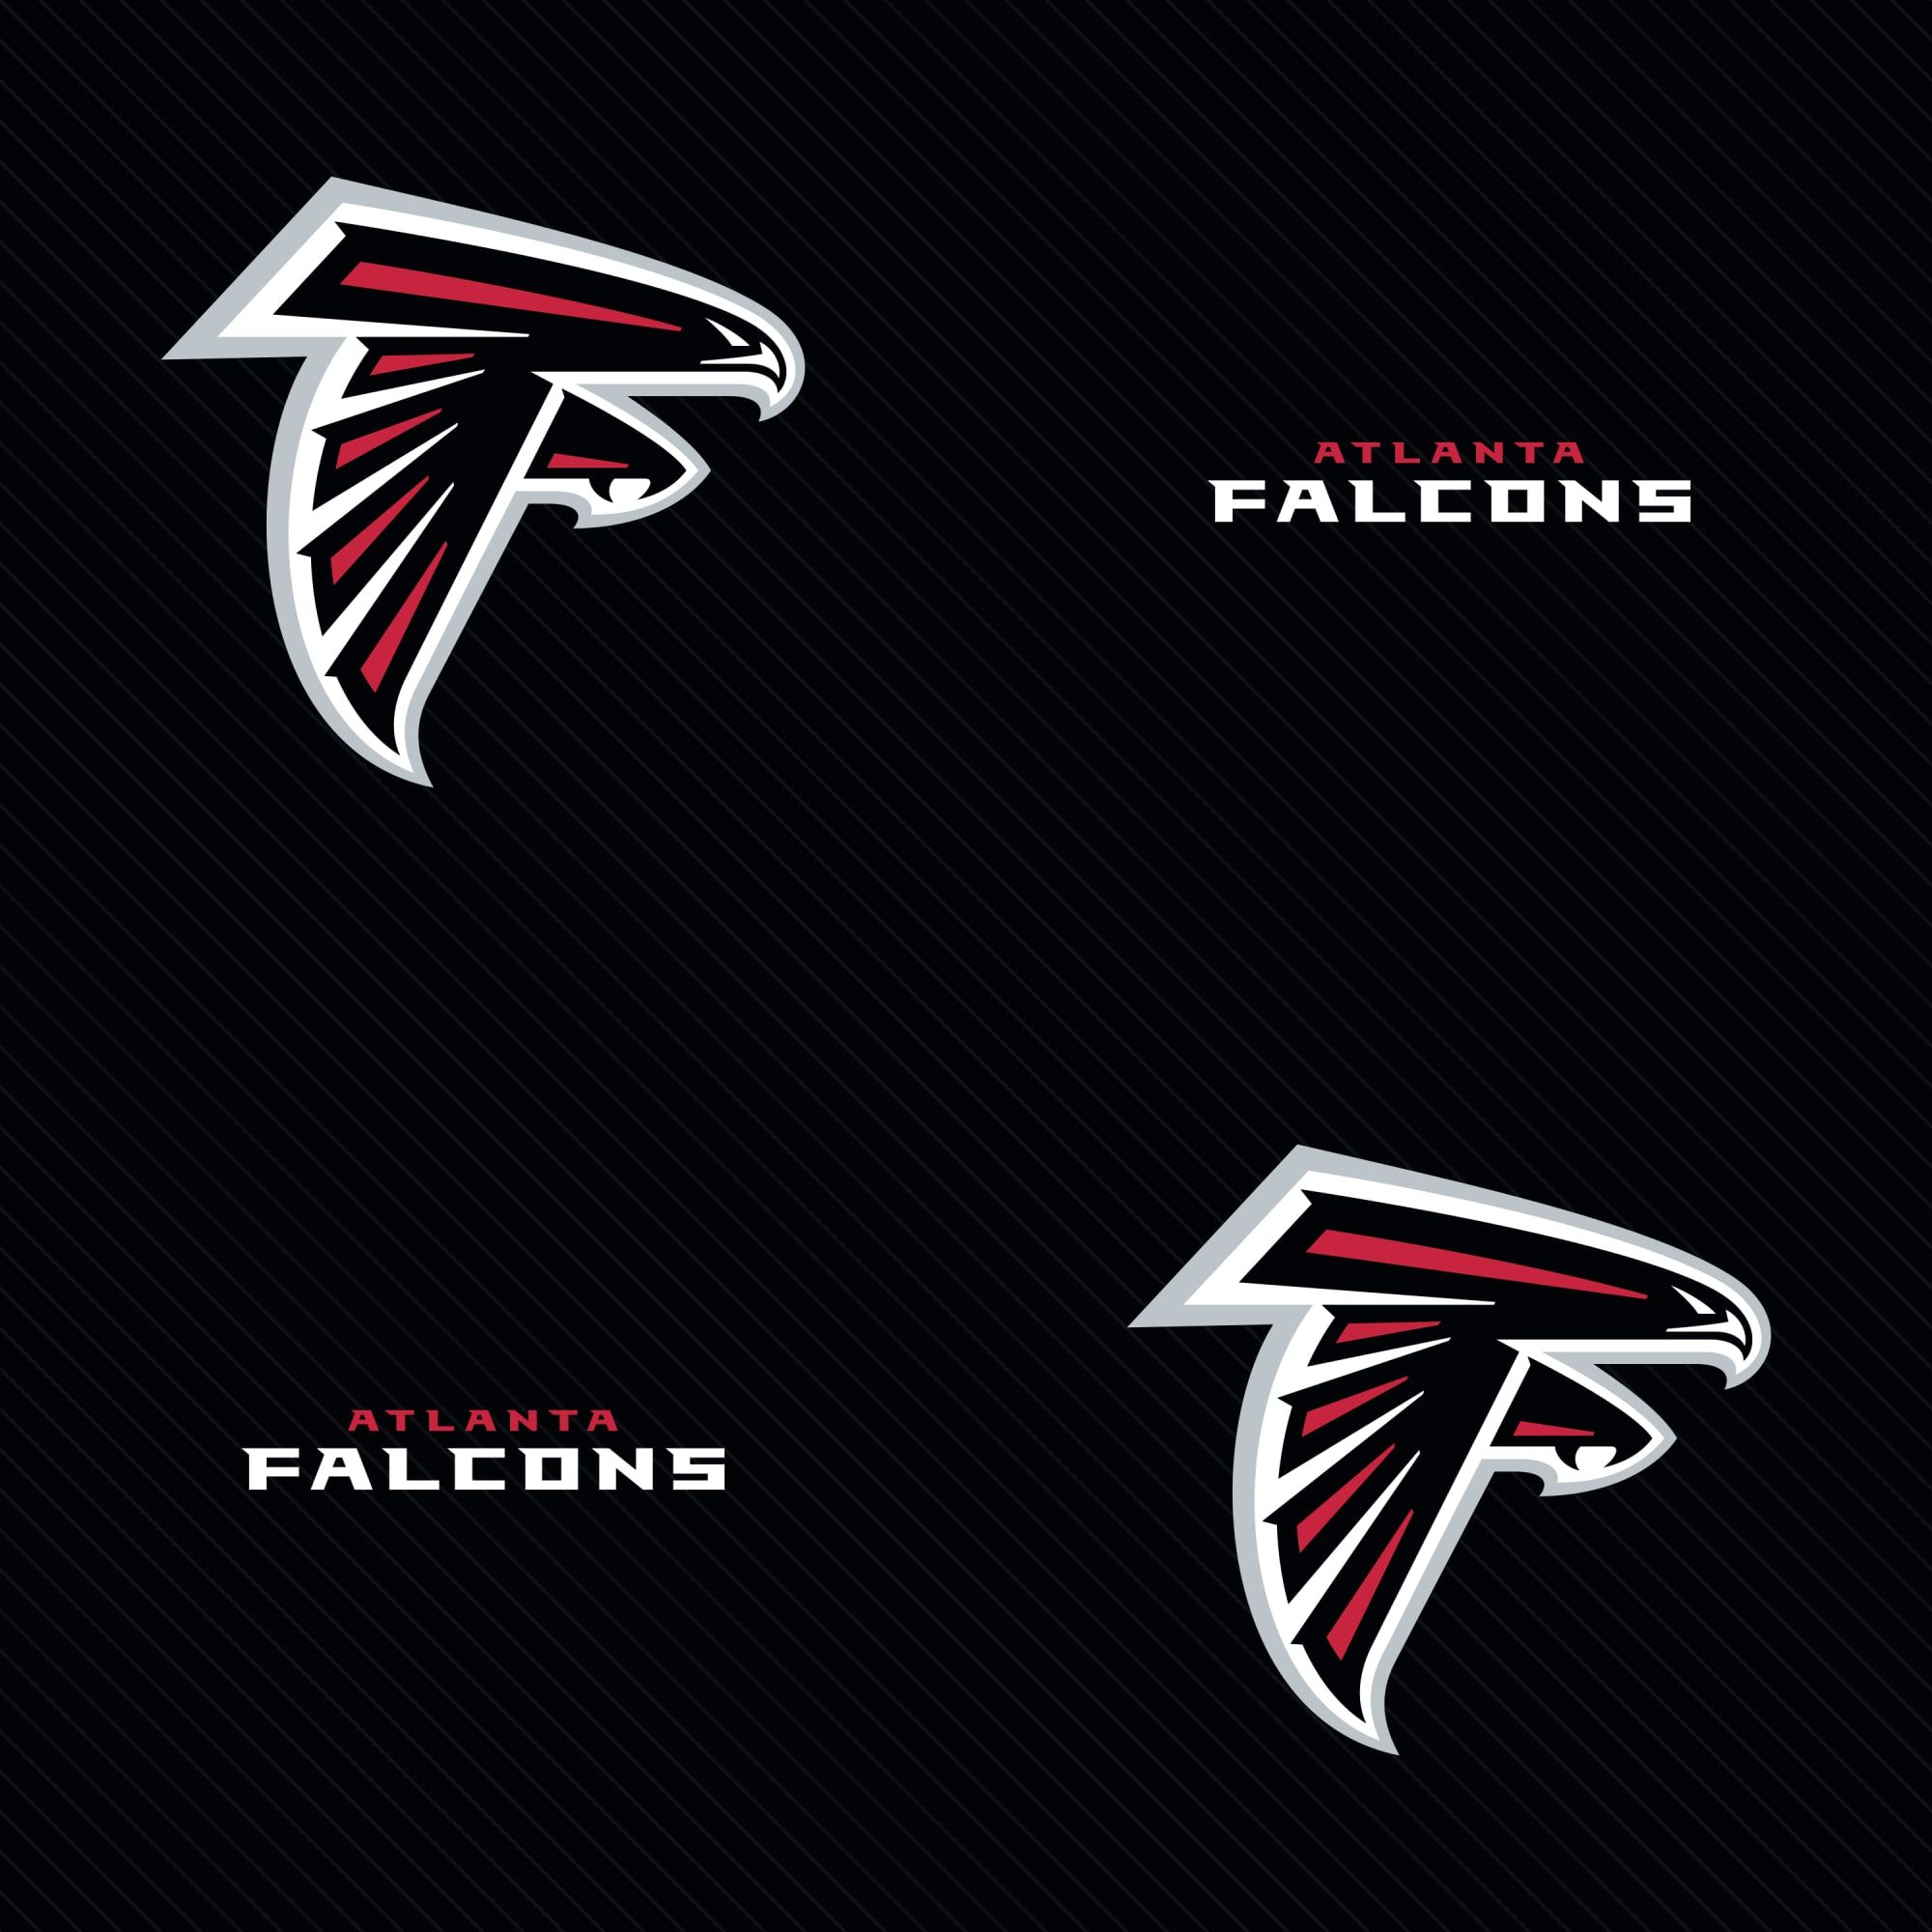 Atlanta Falcons Line Pattern Black Officially Licensed Removable Wallpaper Atlanta Falcons Line Patterns Peel Stick Wallpaper